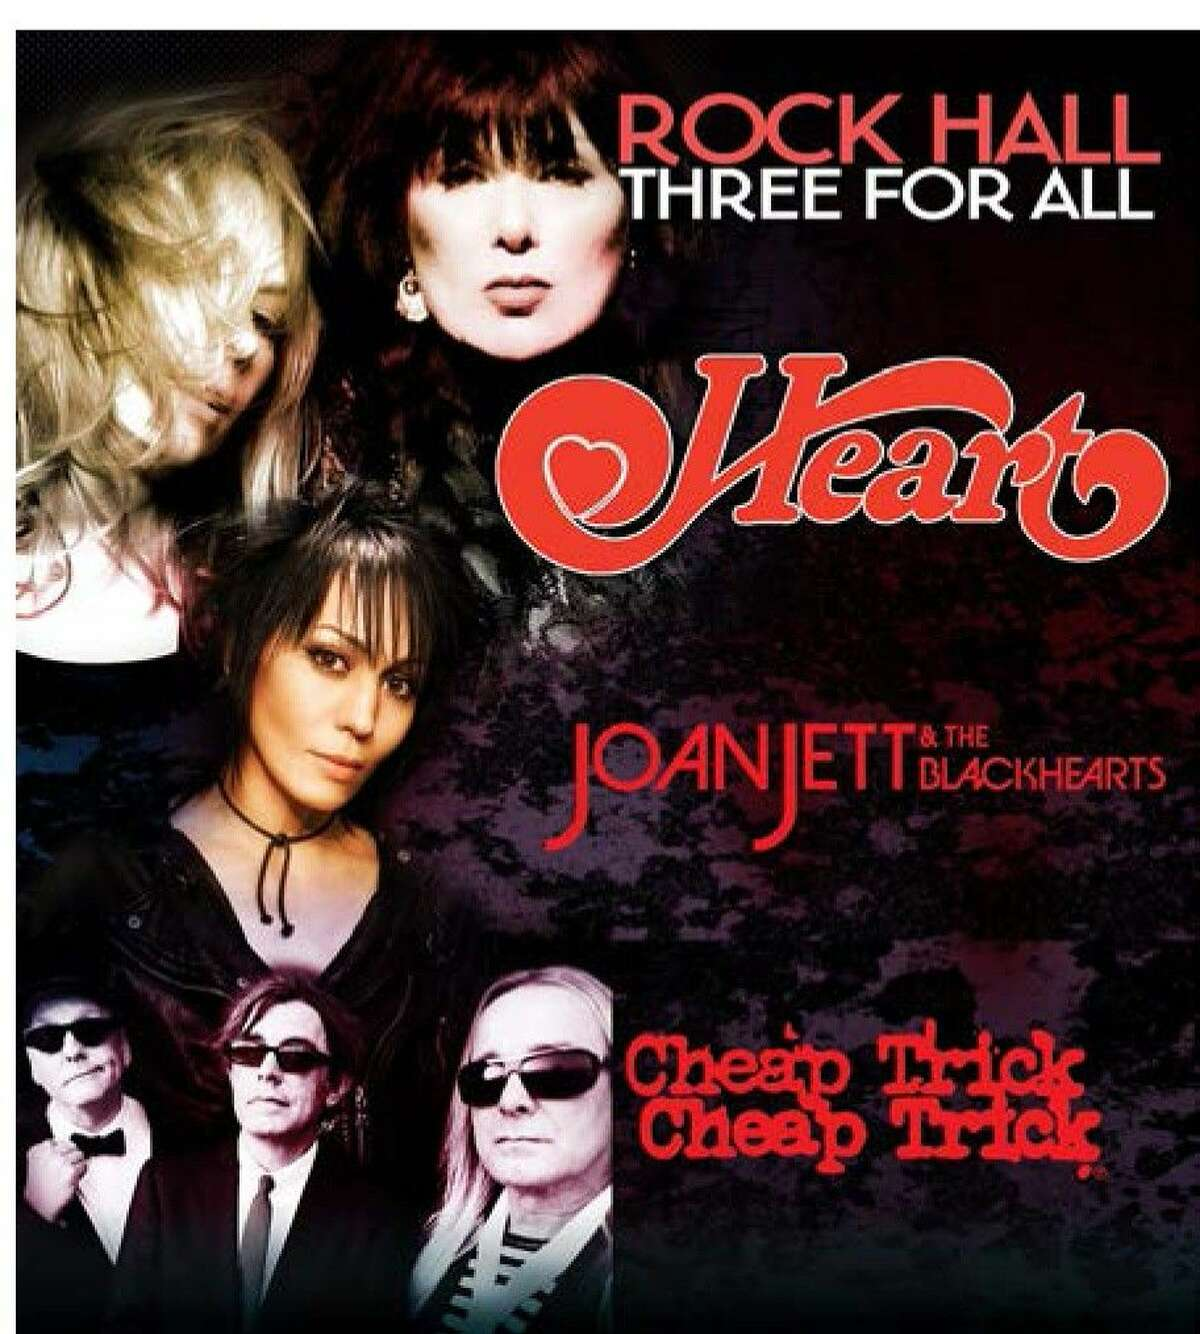 Three of rock music's most iconic bands will hit the road together this summer on The Rock Hall Three For All Featuring Heart, Joan Jett & The Blackhearts and Cheap Trick. The tour will hit Cynthia Woods Mitchell Pavilion in The Woodlands on Aug. 19.